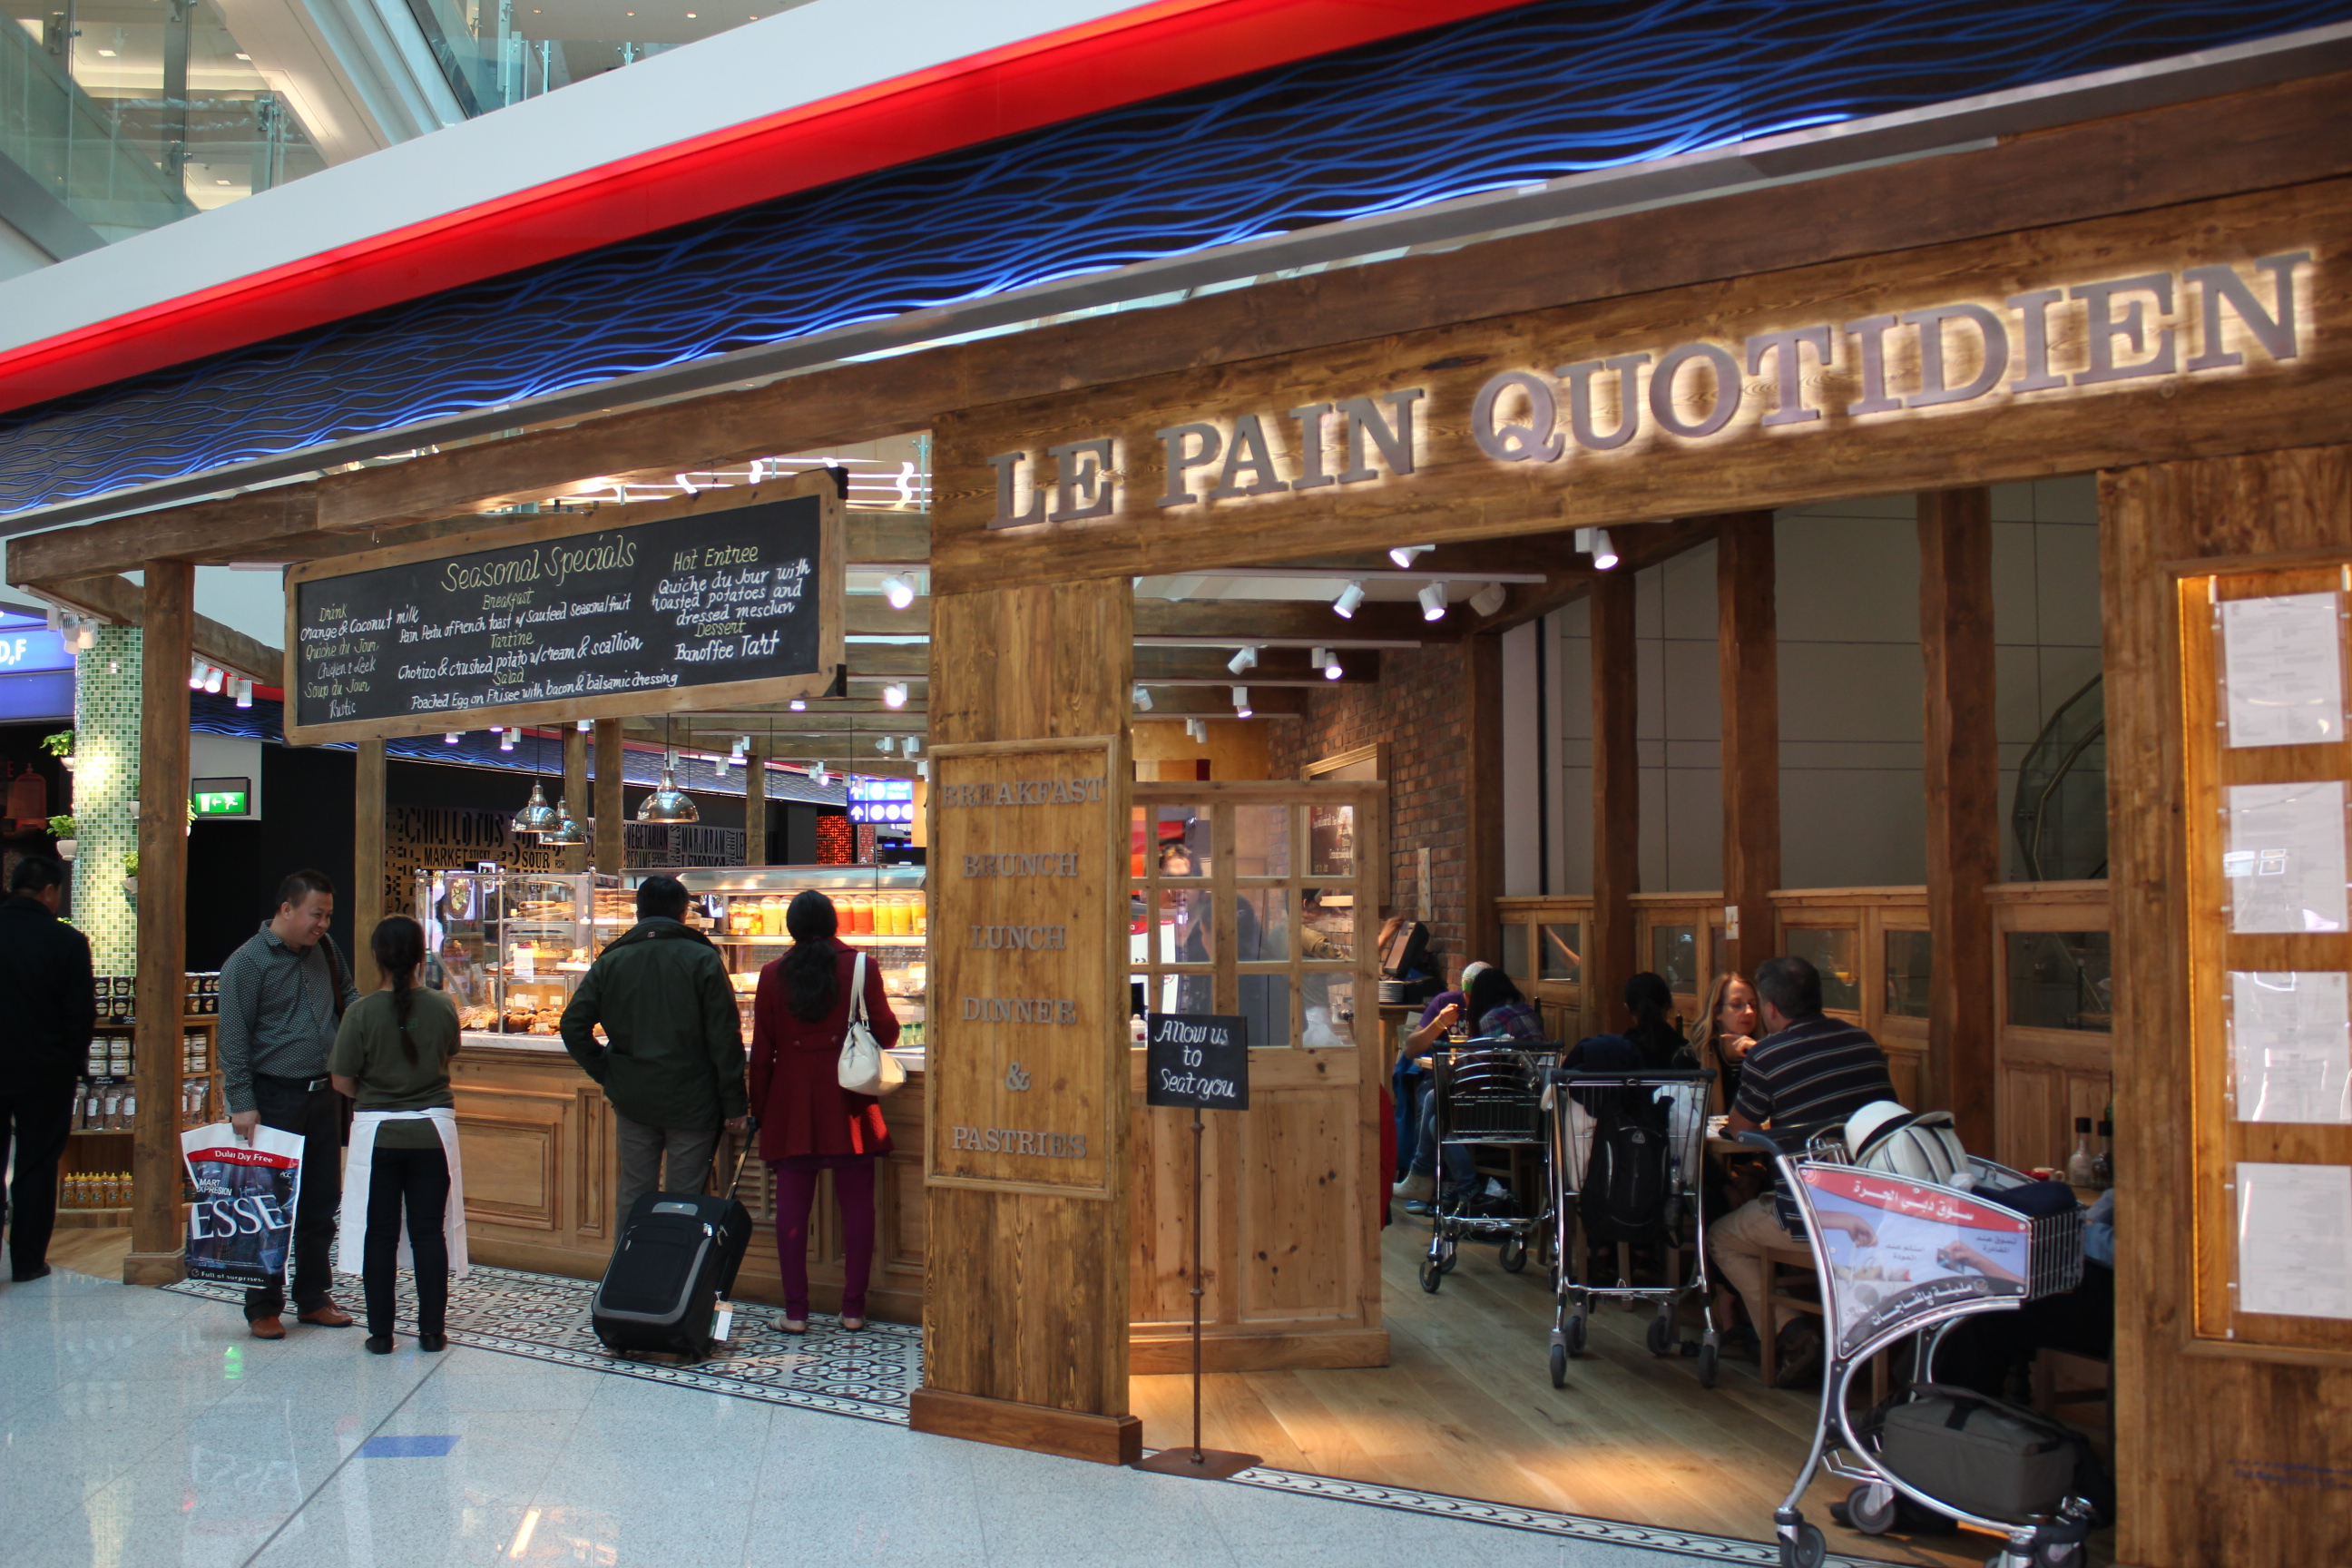 Image result for terminal 3 le pain quotidien""